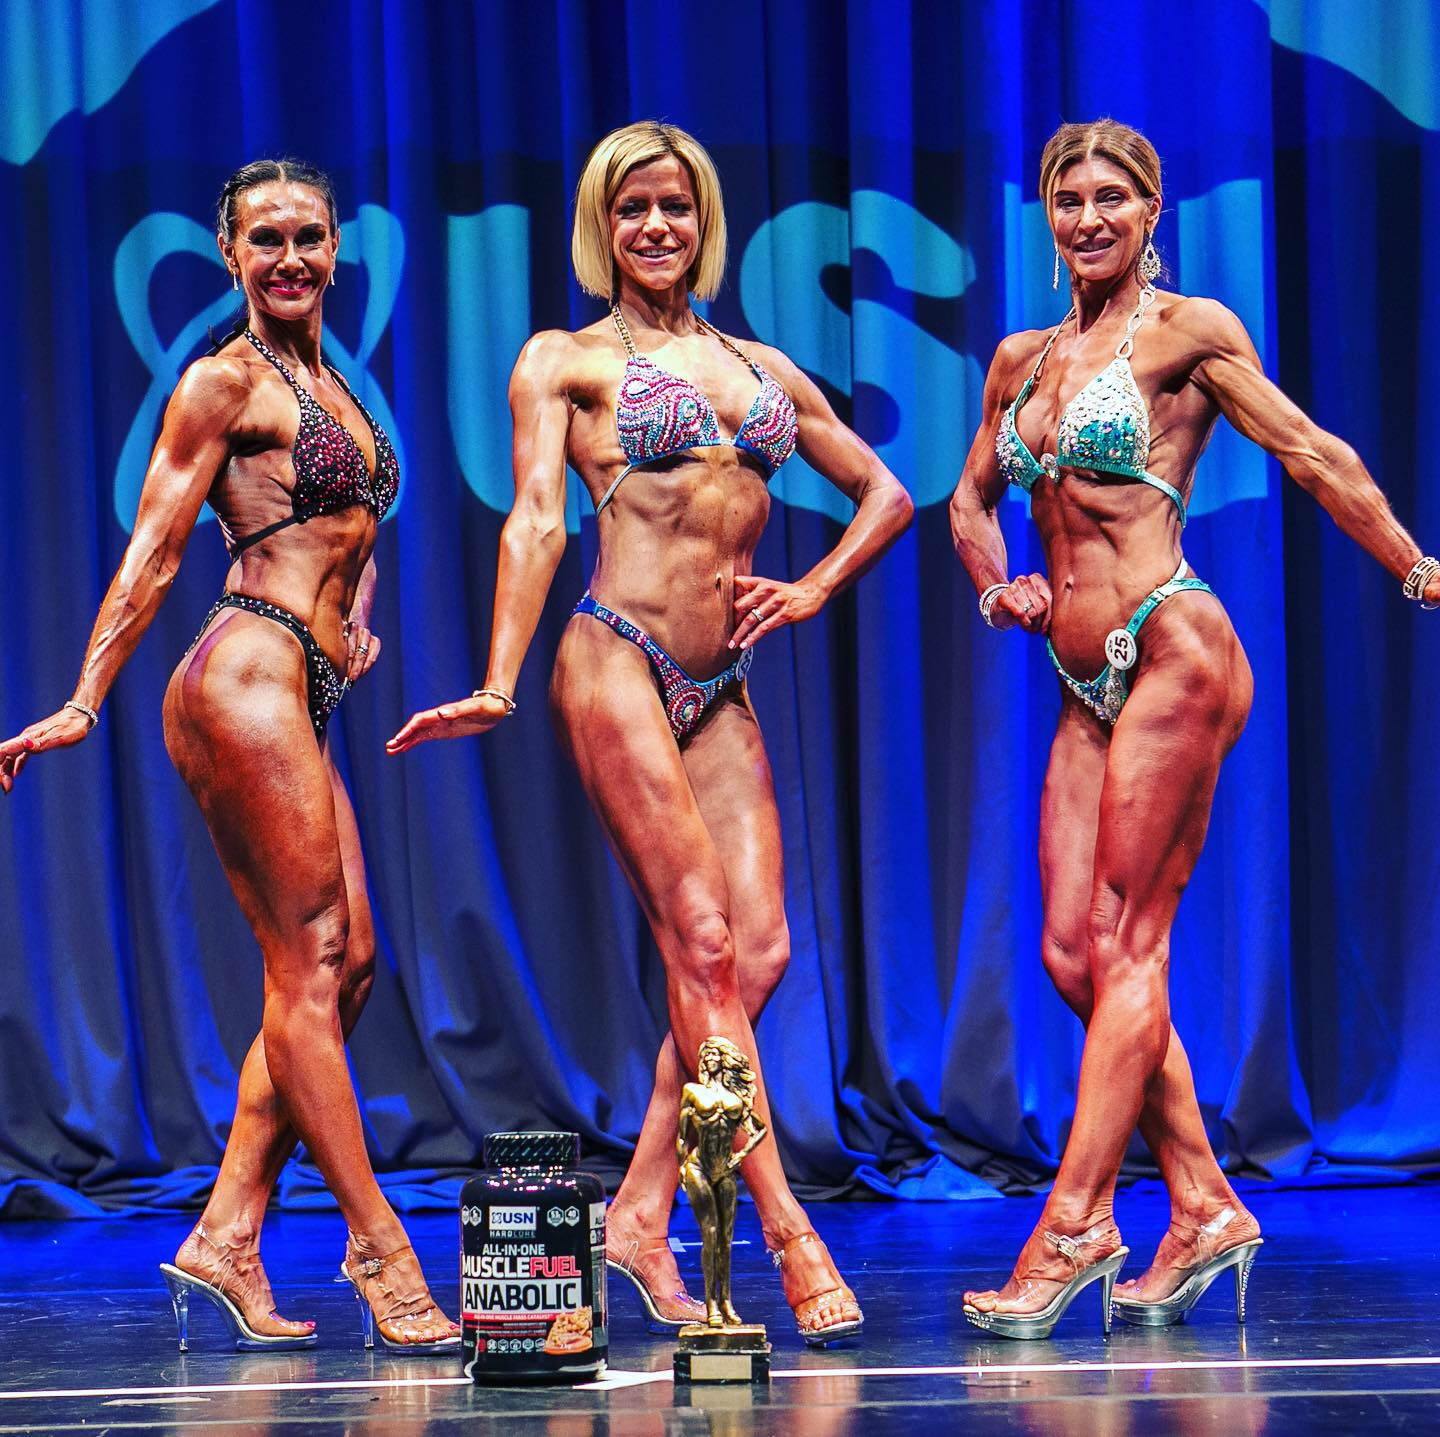 Three Body Building Champions posing on stage